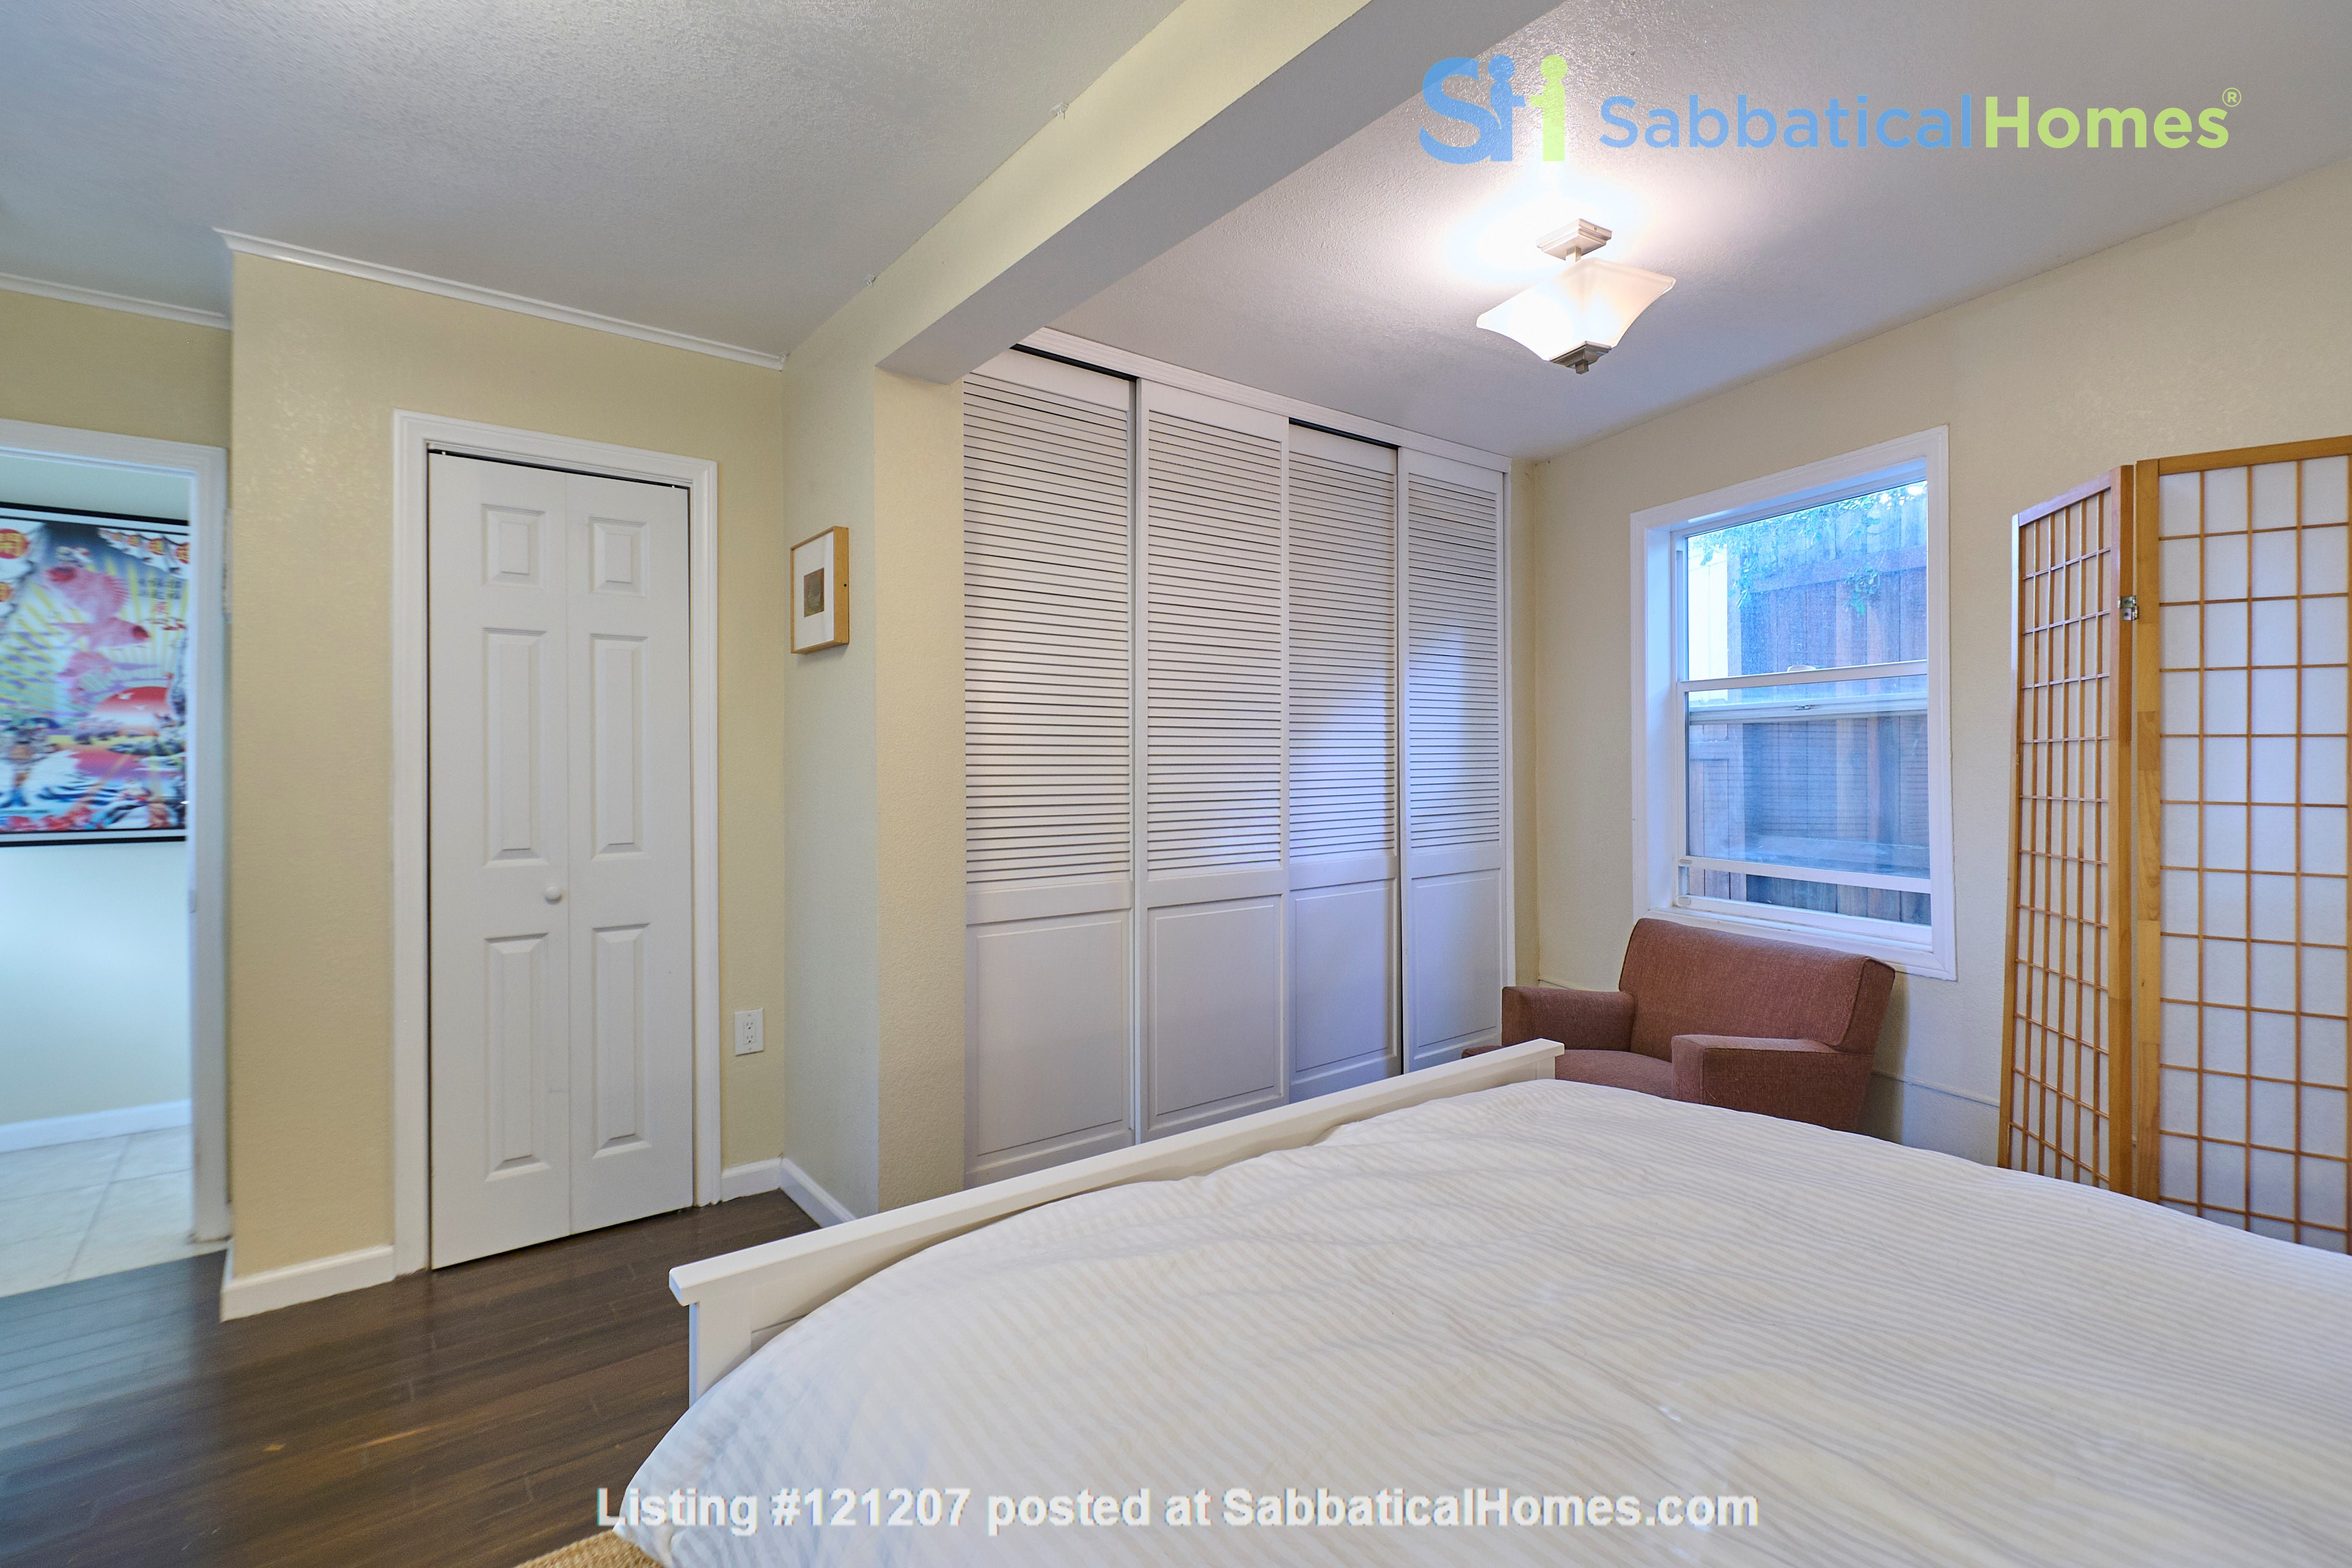 Furnished rooms in South Pasadena hillside home Home Rental in Los Angeles, California, United States 3